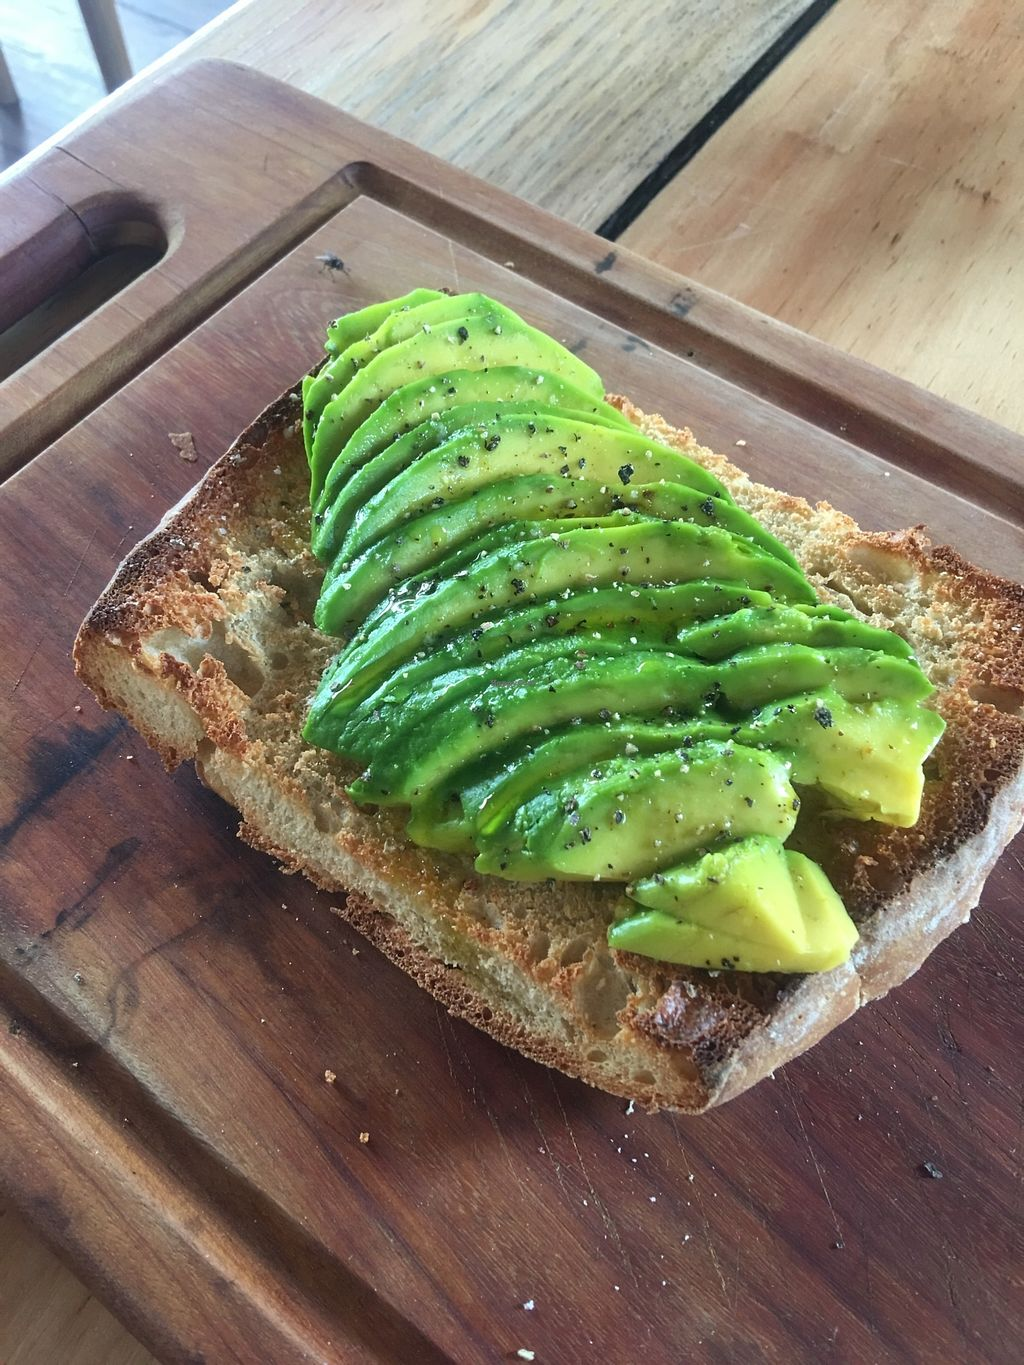 "Photo of Taberna 99 at 99 Surf Lodge  by <a href=""/members/profile/SimonZanini"">SimonZanini</a> <br/>Avocado toast @ 99 <br/> December 30, 2017  - <a href='/contact/abuse/image/108218/340723'>Report</a>"